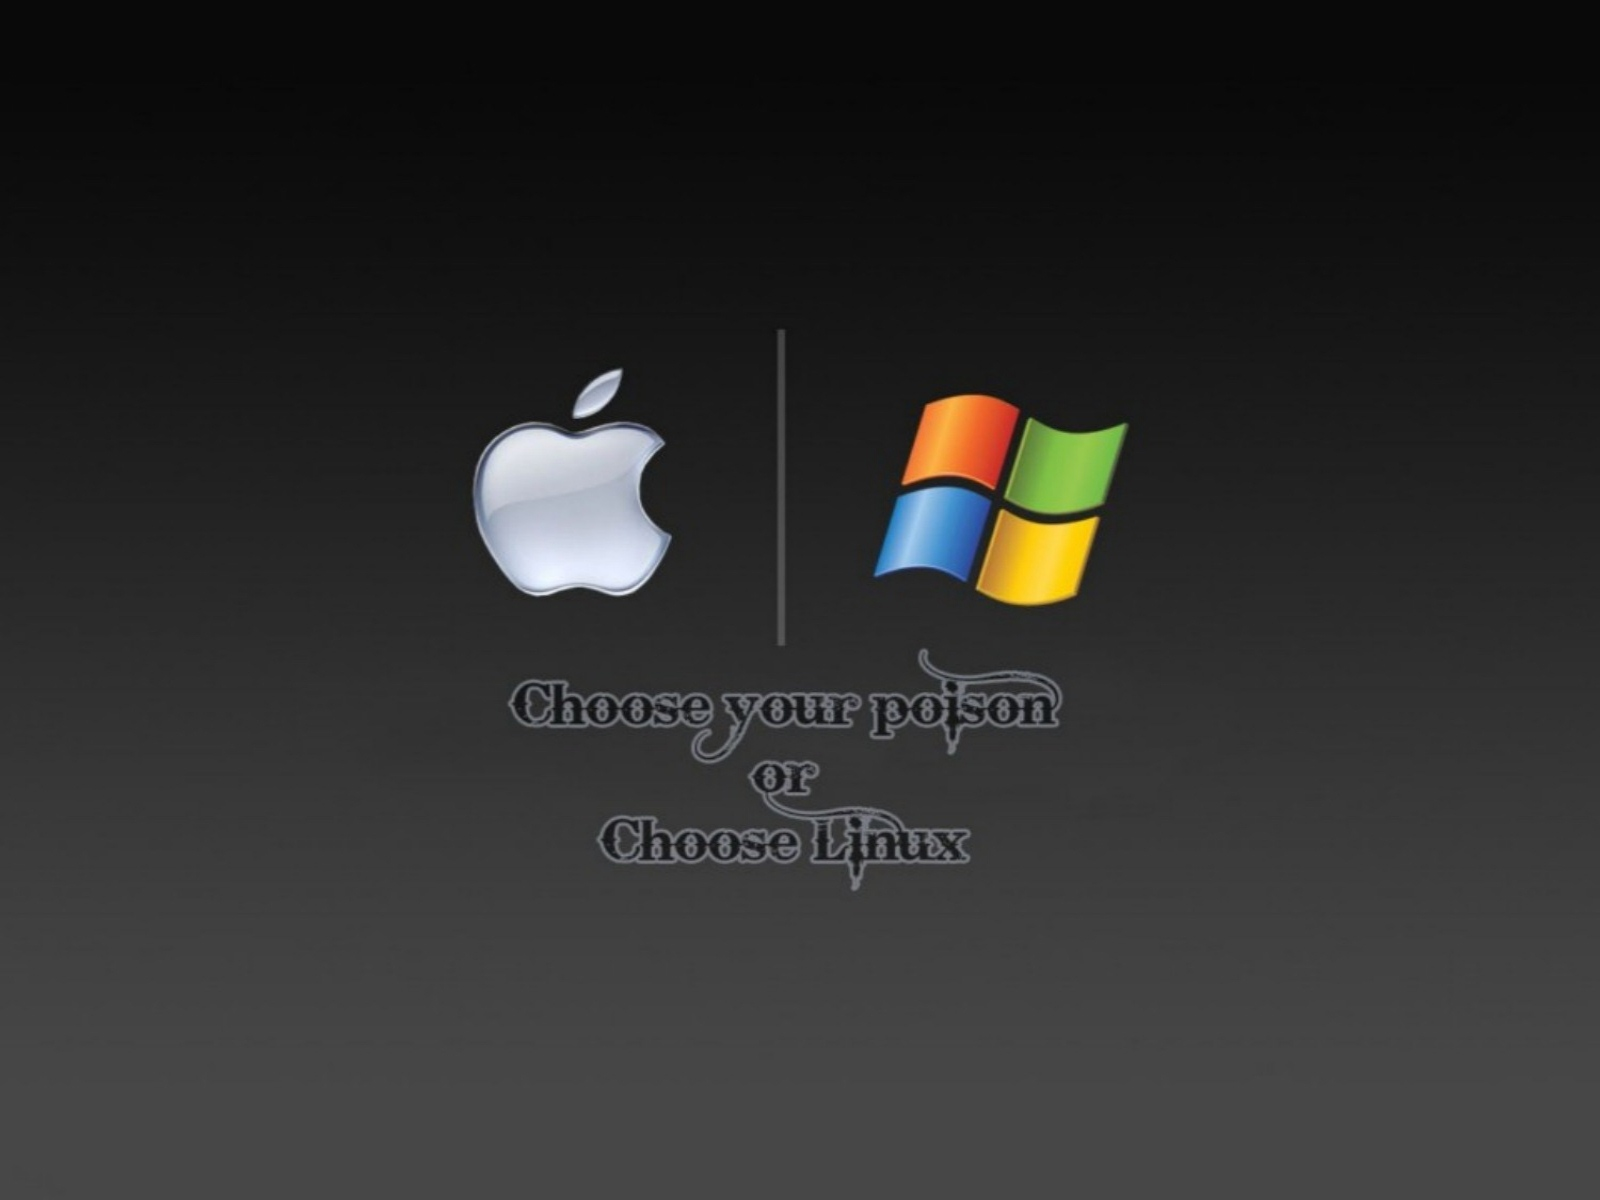 Linux vs Windows Download HD Wallpapers 1600x1200